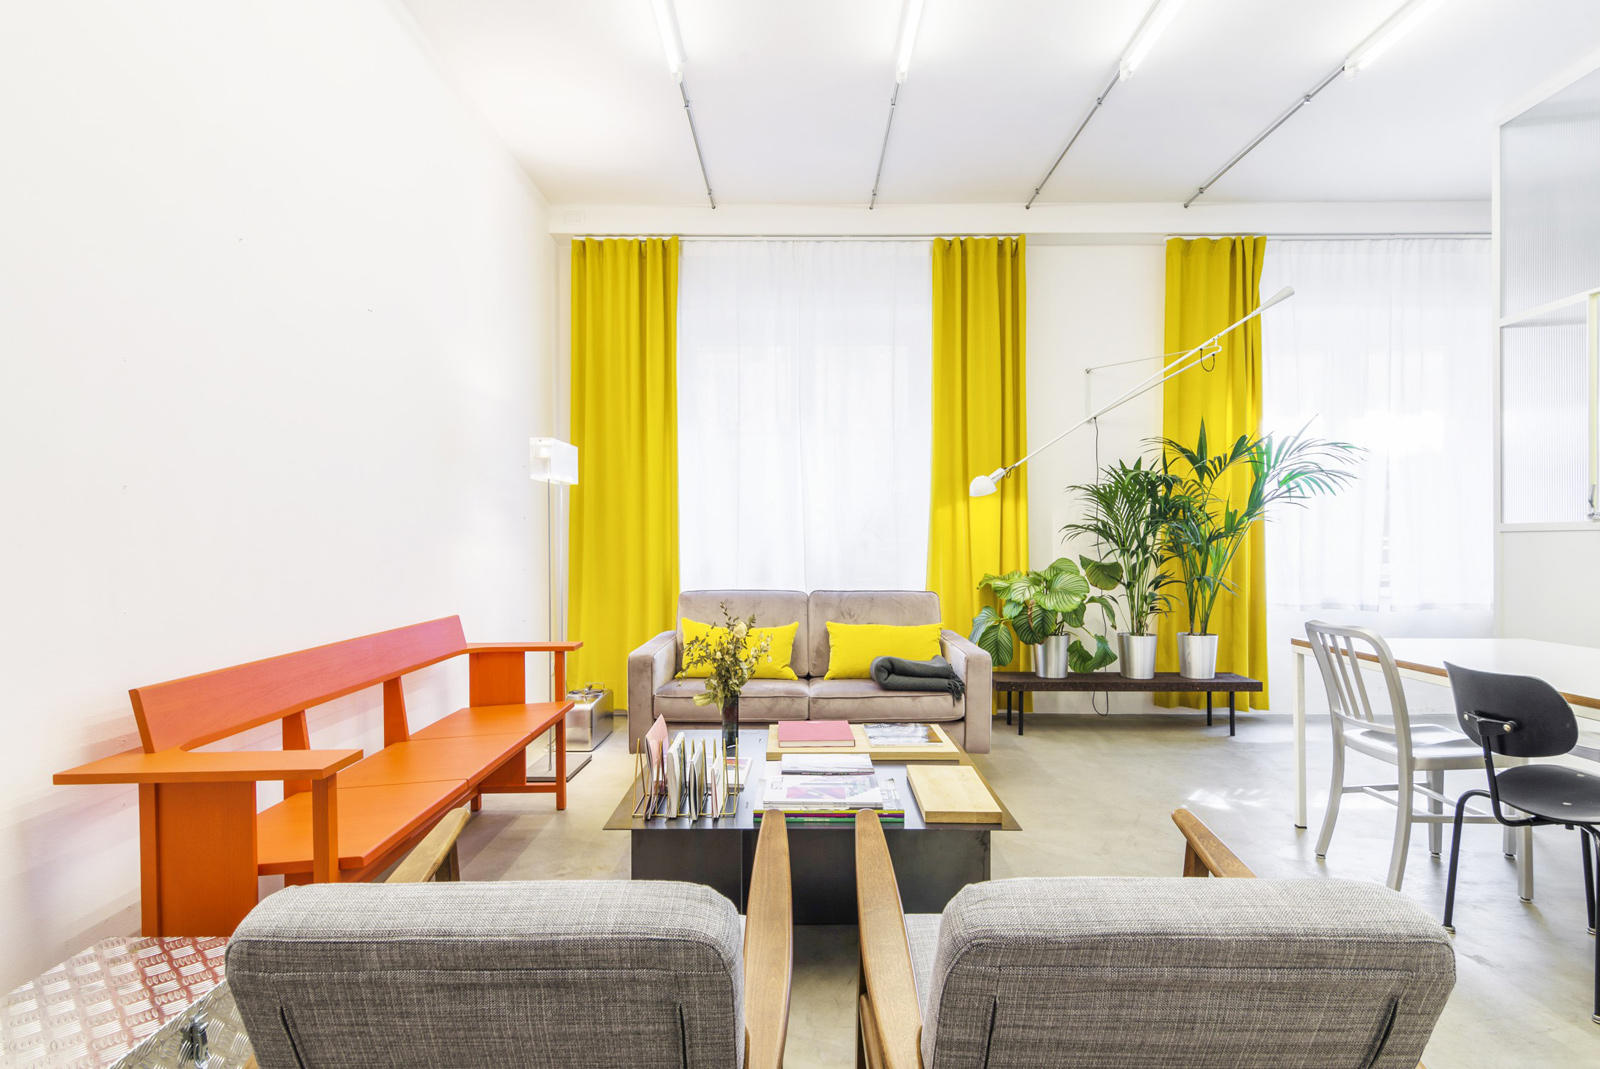 Milan apartment for rent via Airbnb